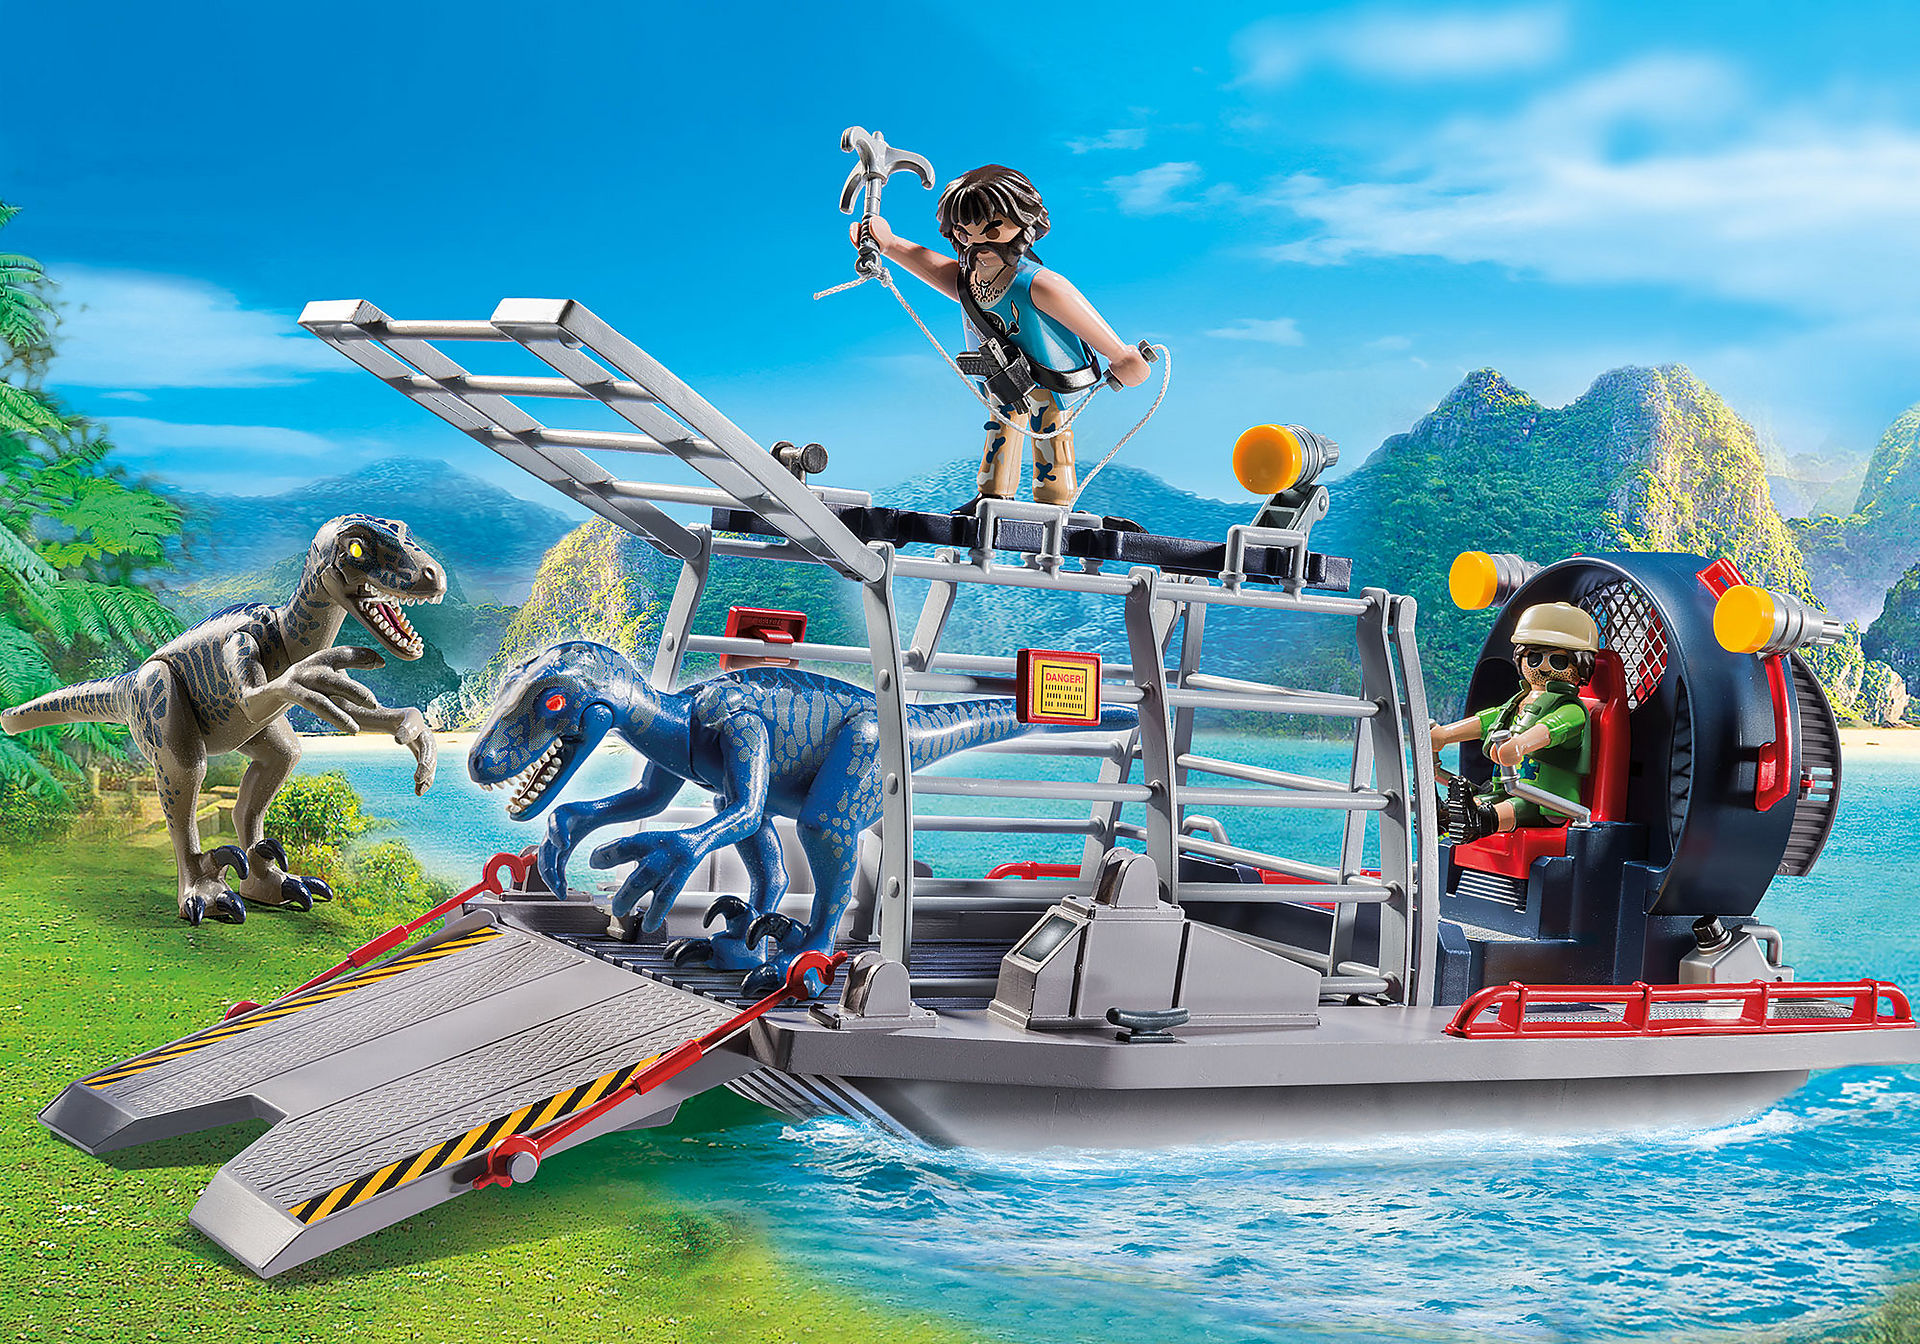 http://media.playmobil.com/i/playmobil/9433_product_detail/Propellerboot mit Dinokäfig